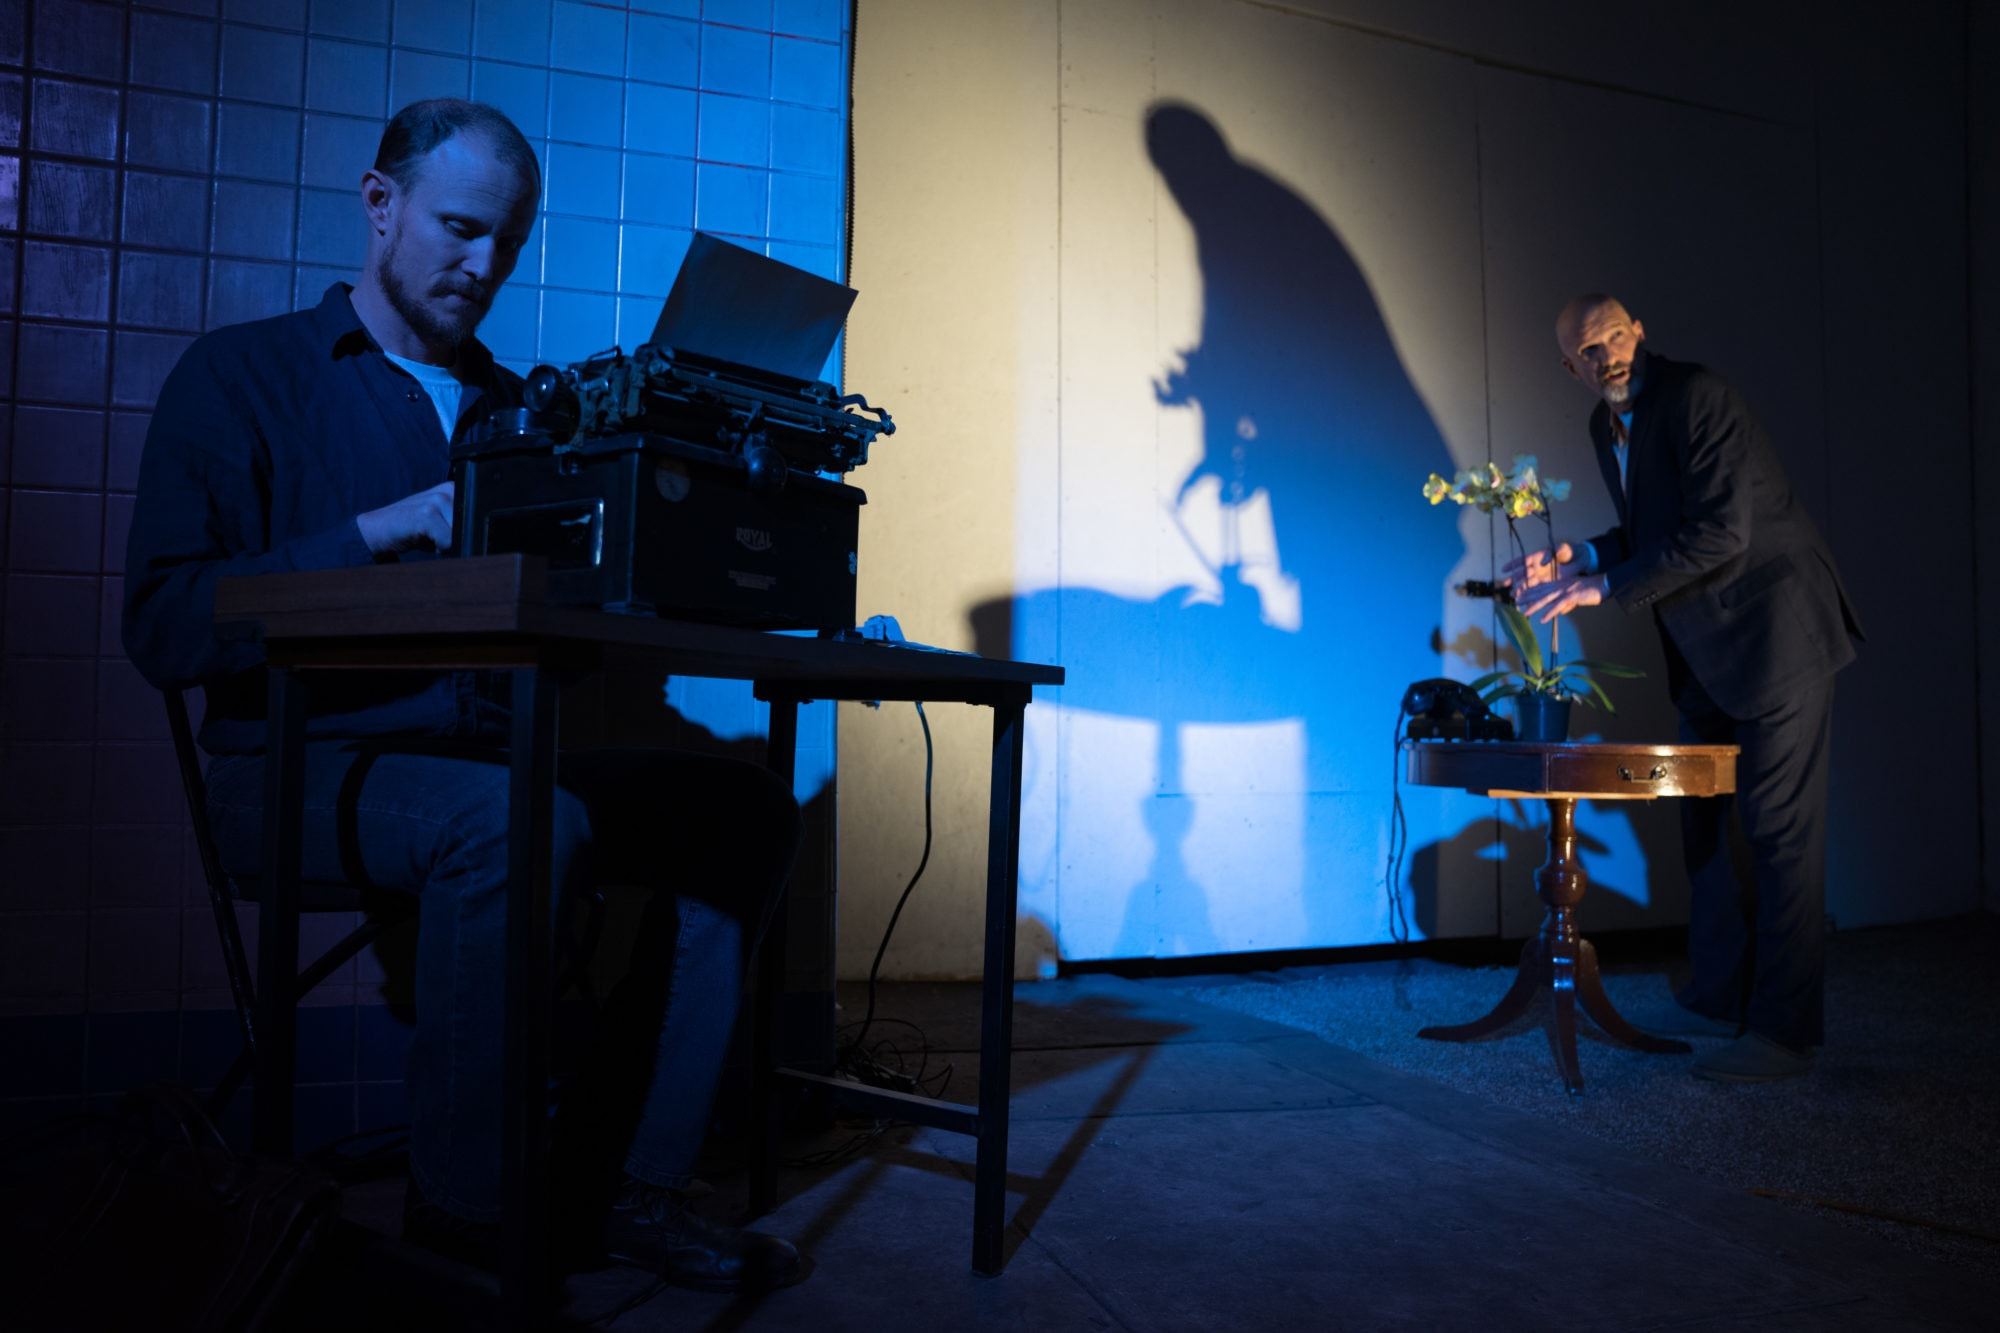 Alliance for New Music-Theatre will perform Václav Havel's 'Protest' at Dupont Underground this fall. Photo courtesy of Amy Killion/Alliance for New Music-Theatre.